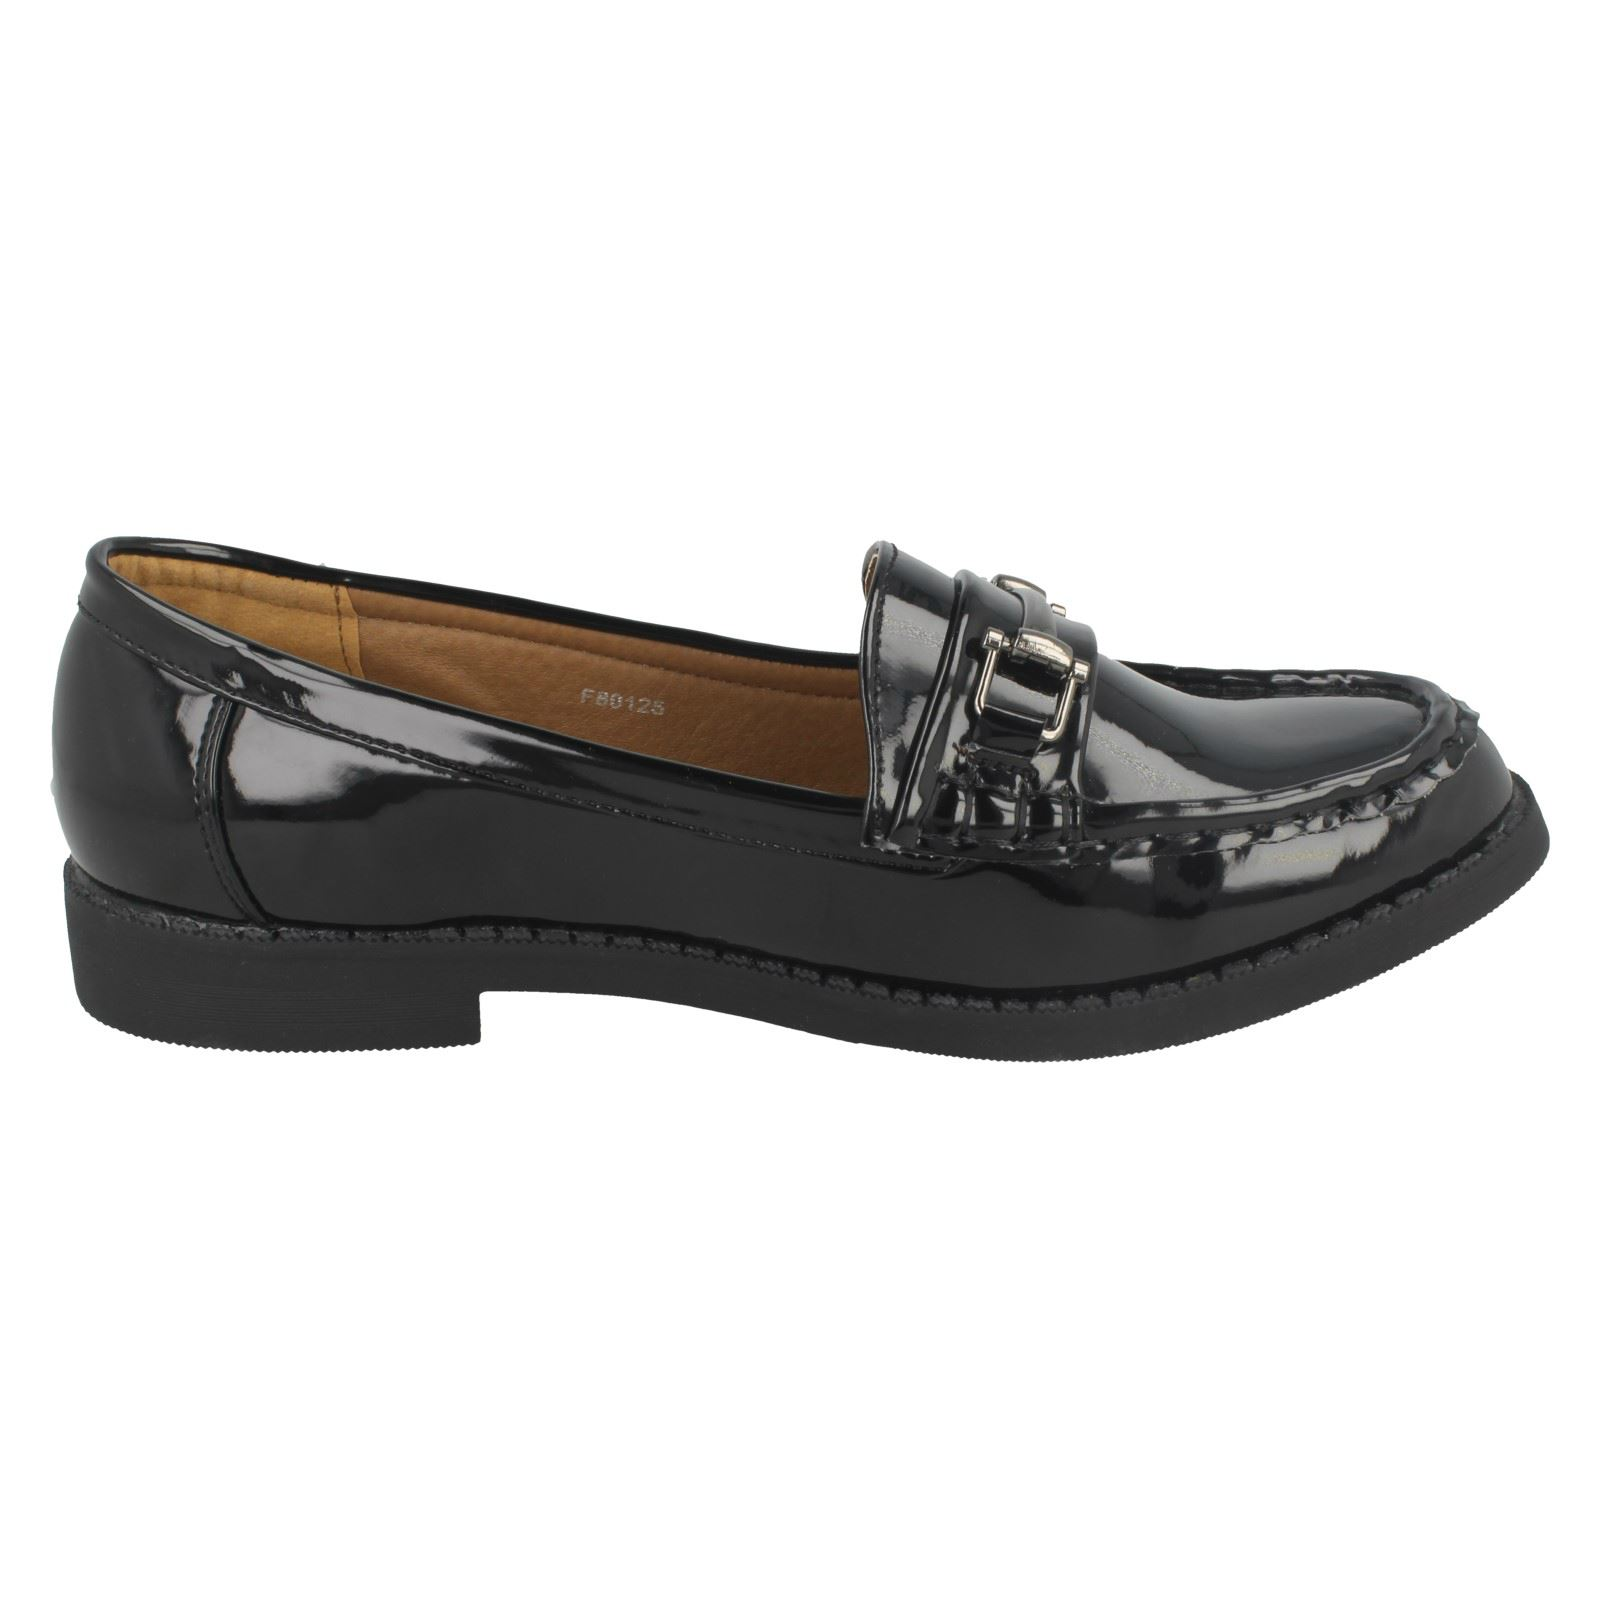 SALE Ladies spot on  slip on Black patent loafers shoes F80122